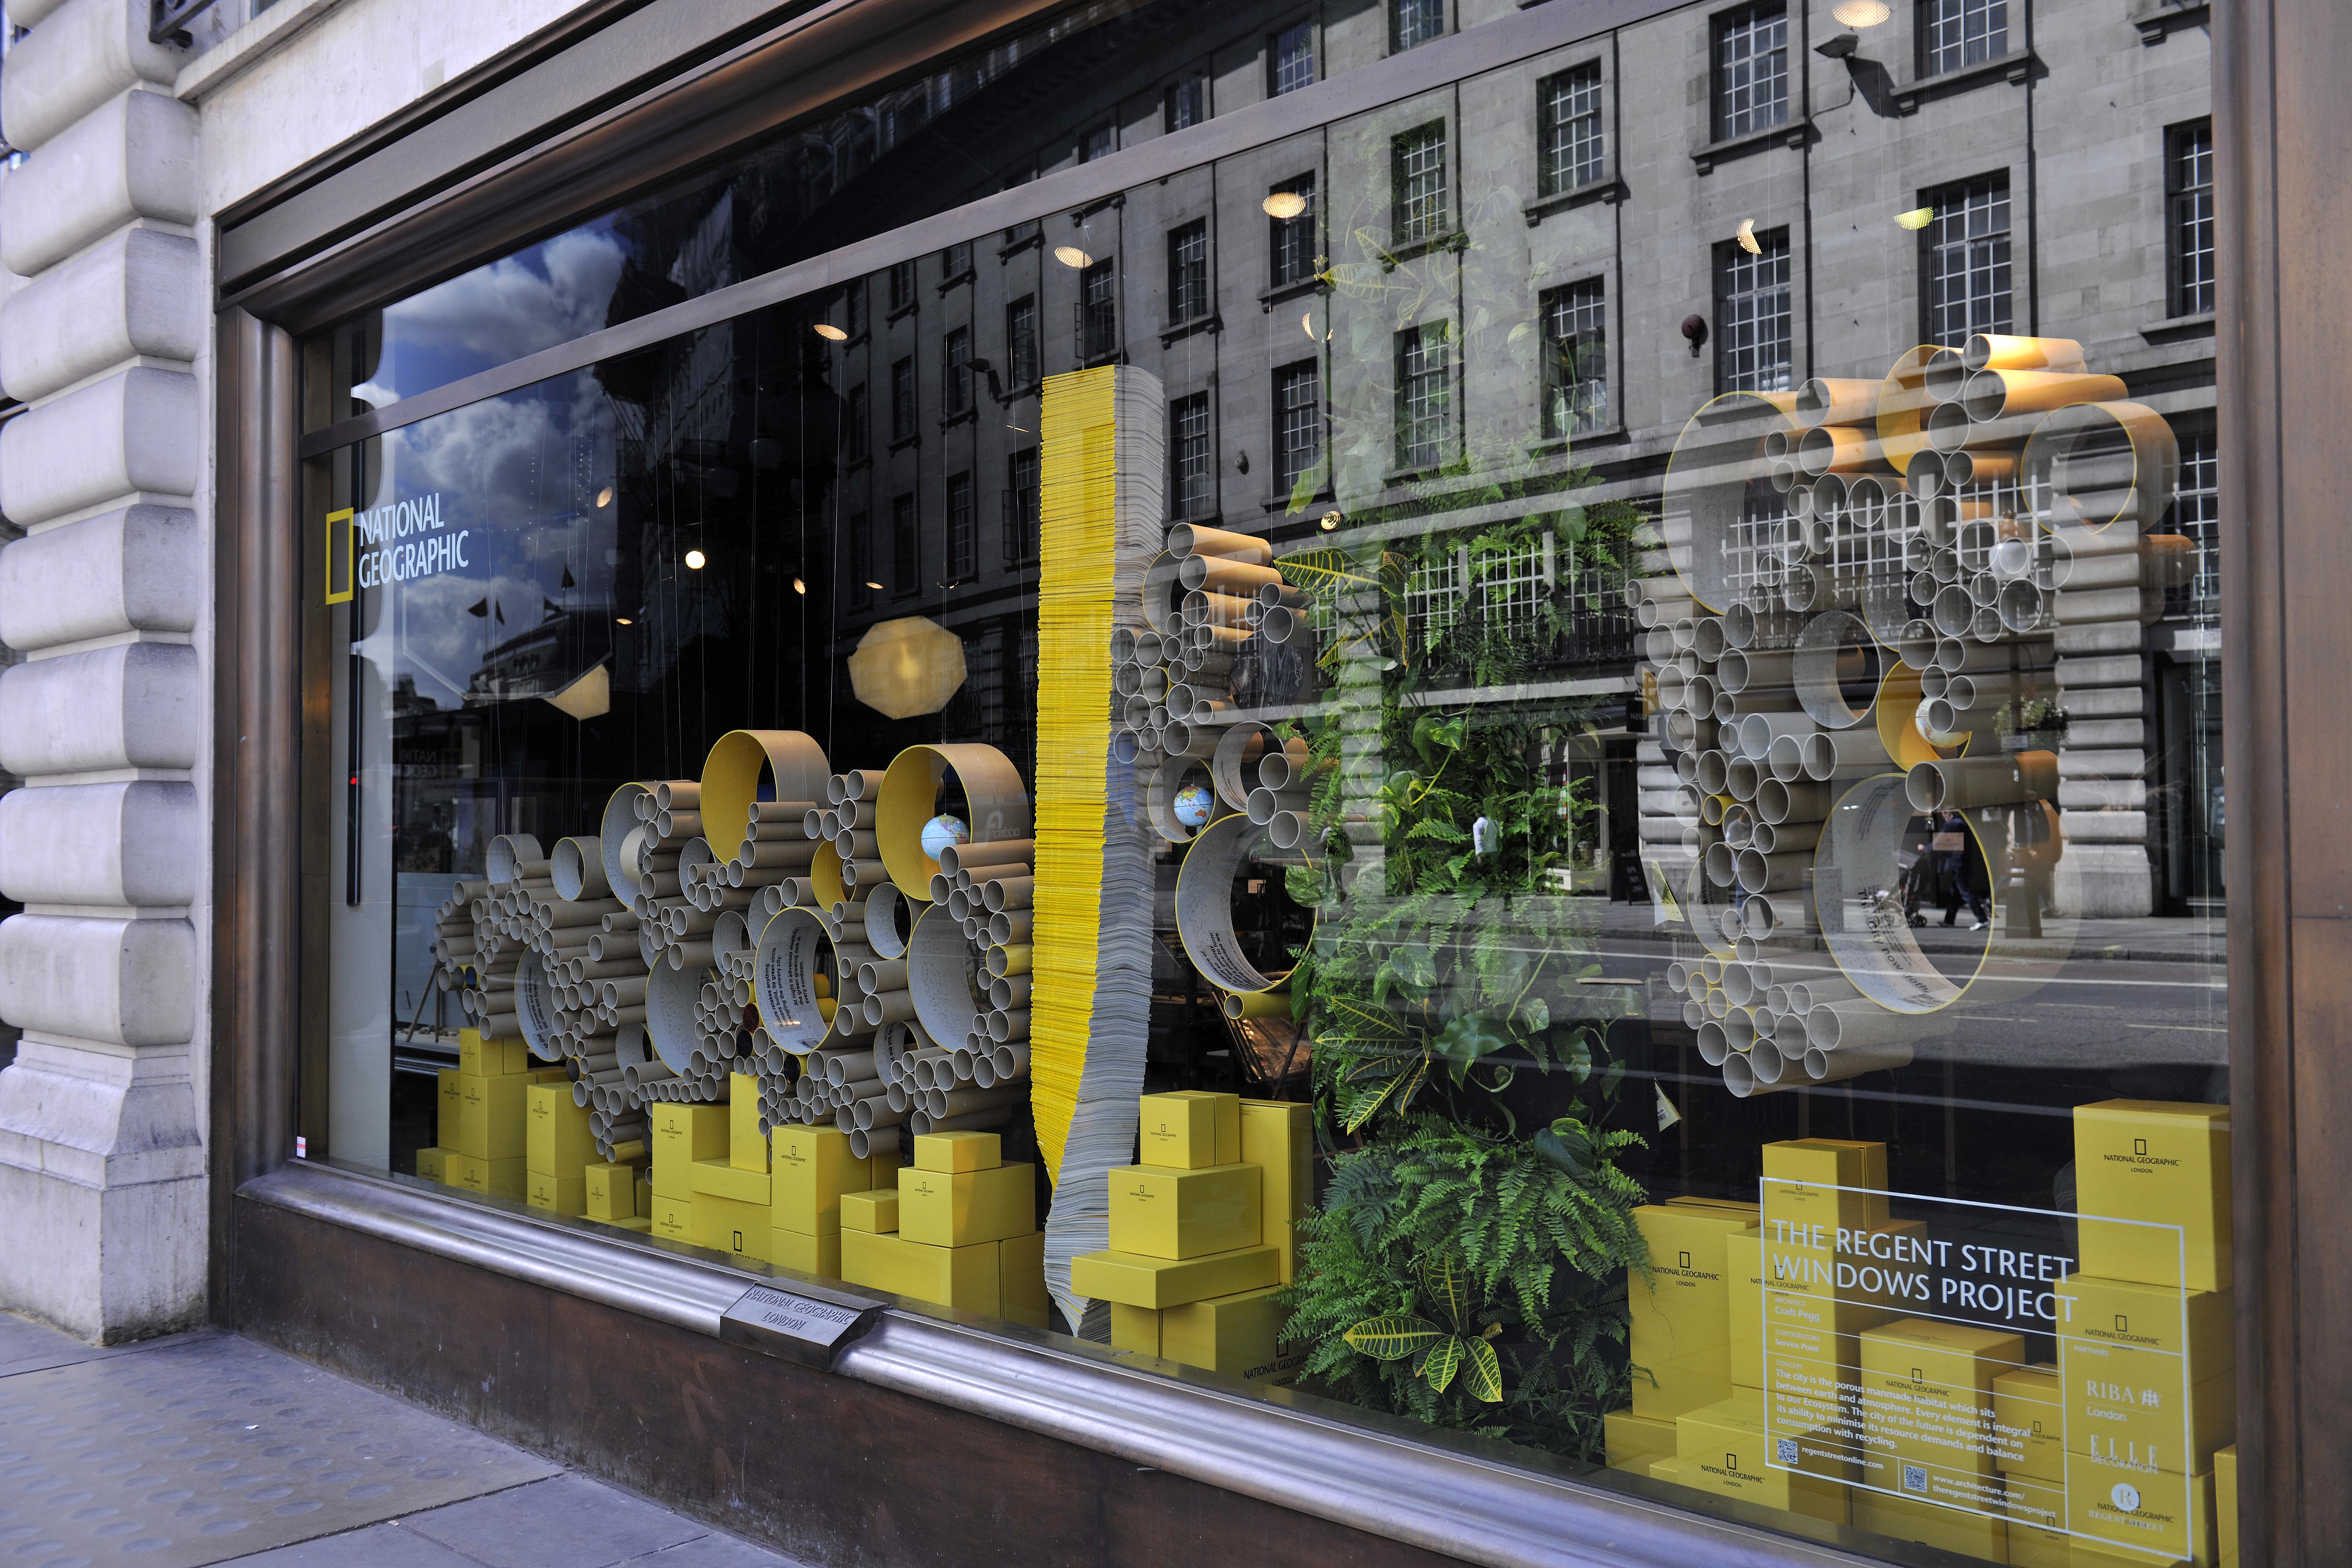 The regent street windows project 2012 - More